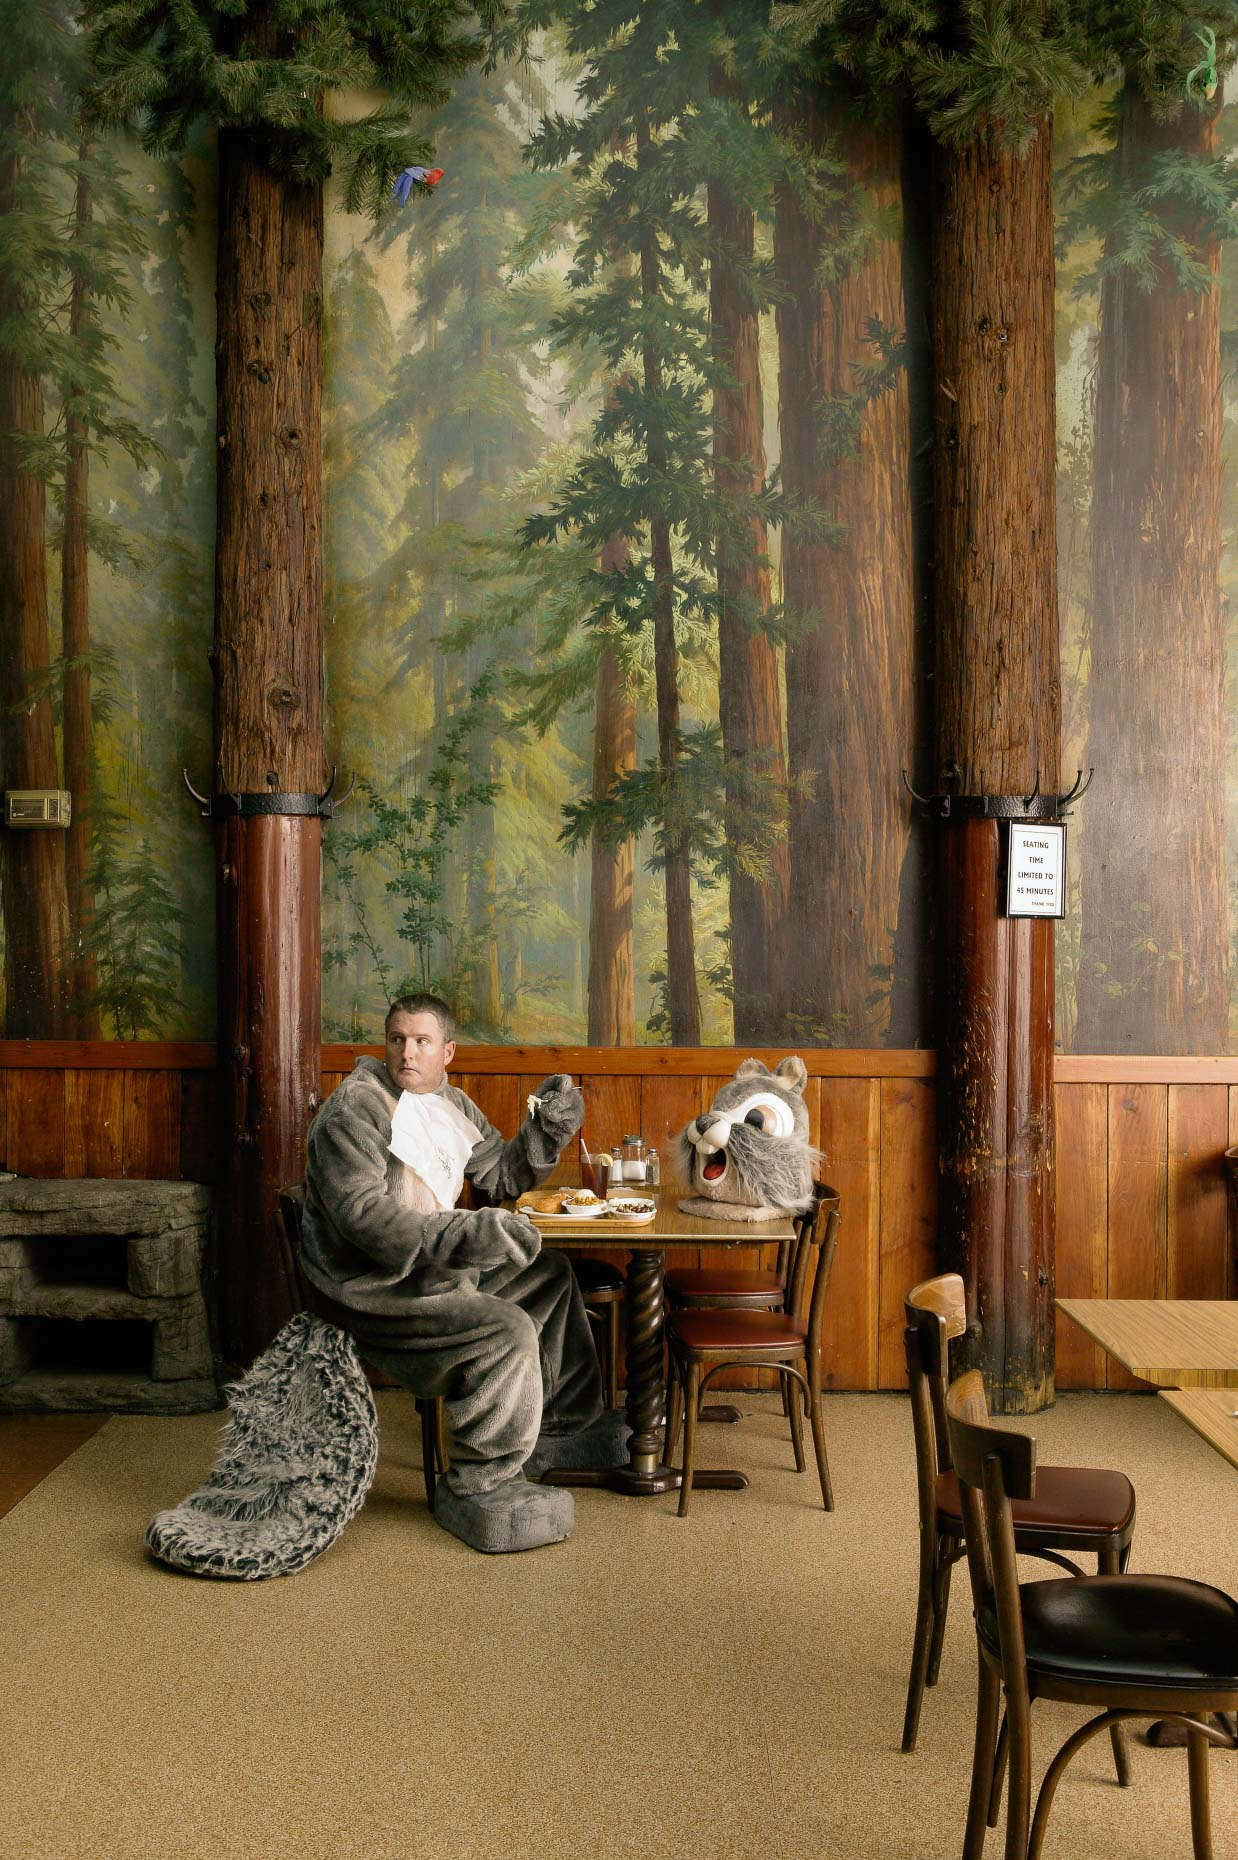 Man in squirrel costume having coffee in forest themed restaurant. David Zaitz.